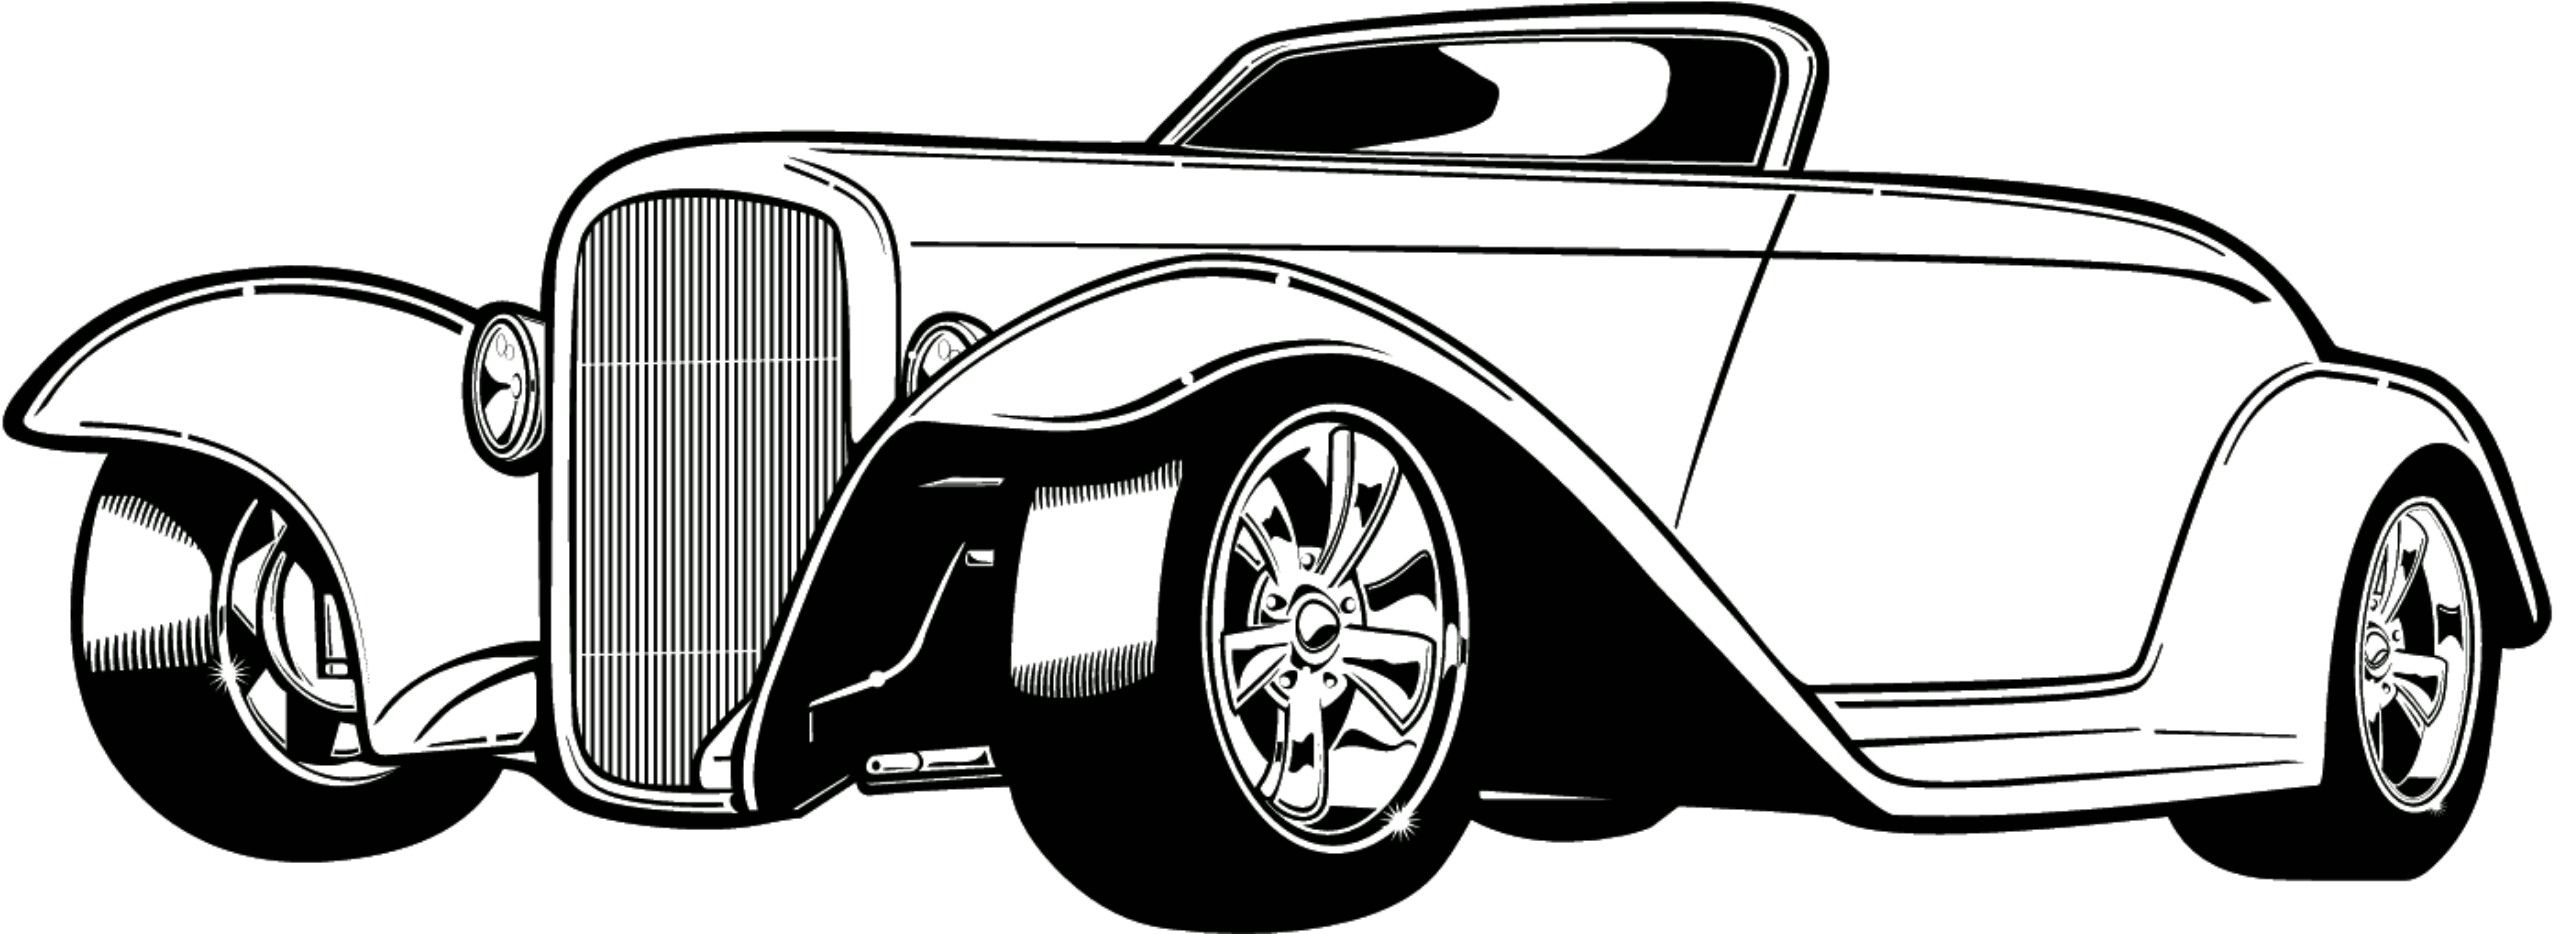 medium resolution of cars coloring pages adult coloring pages hot rod cars hot rods line